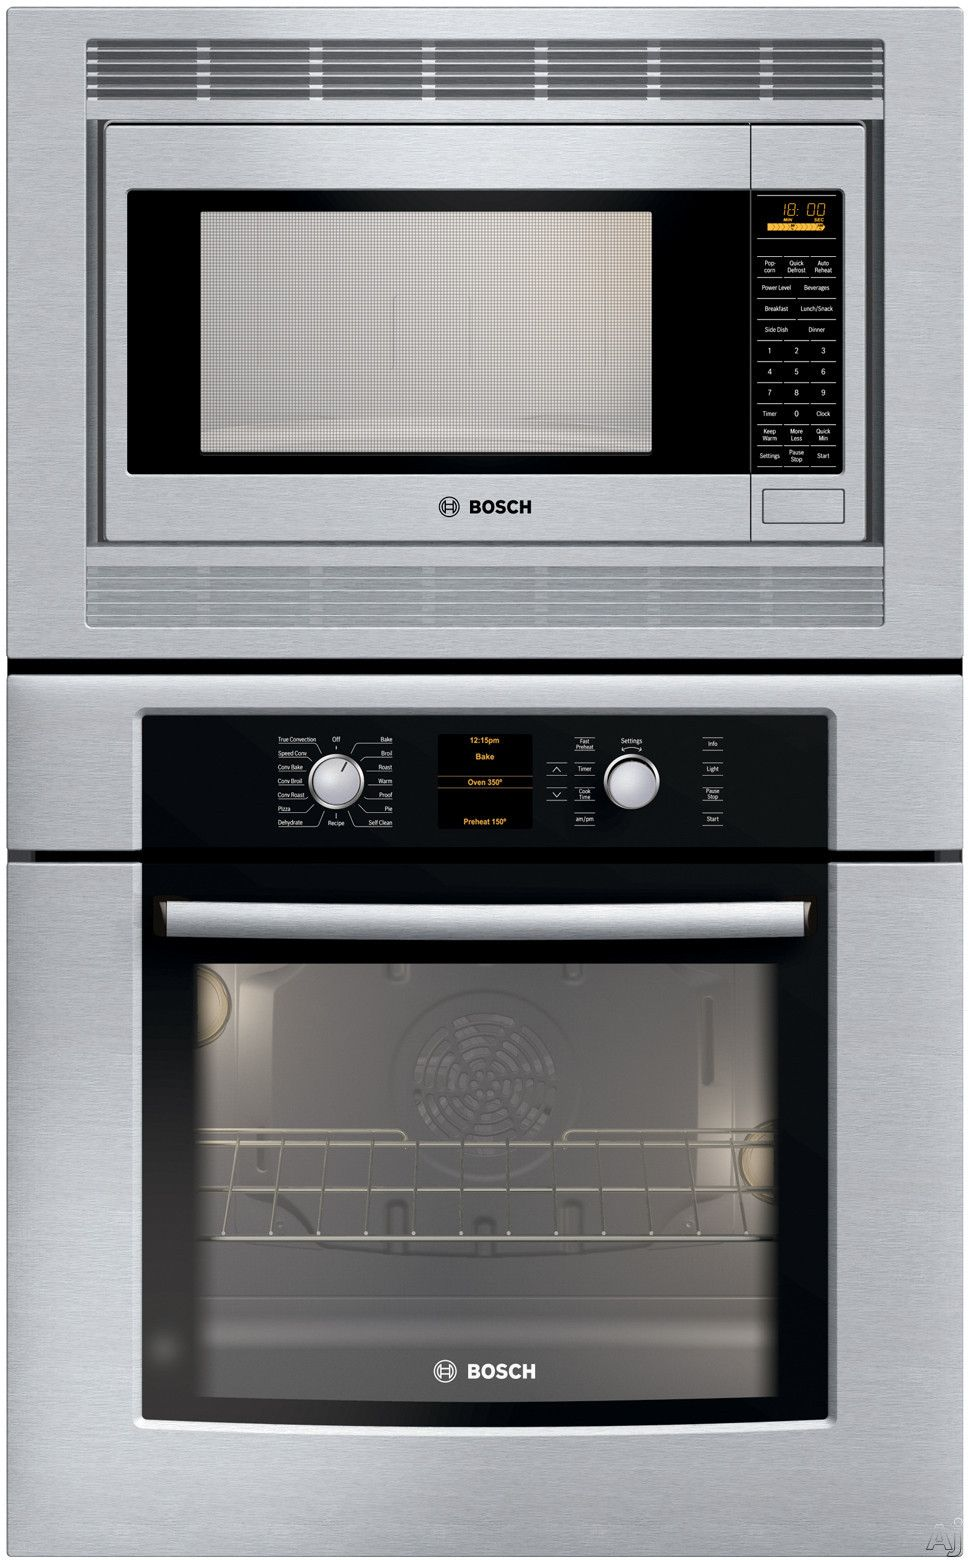 Bosch Microwave Bosch Wall Oven Micro Combo Great For Small Spaces Tiny House